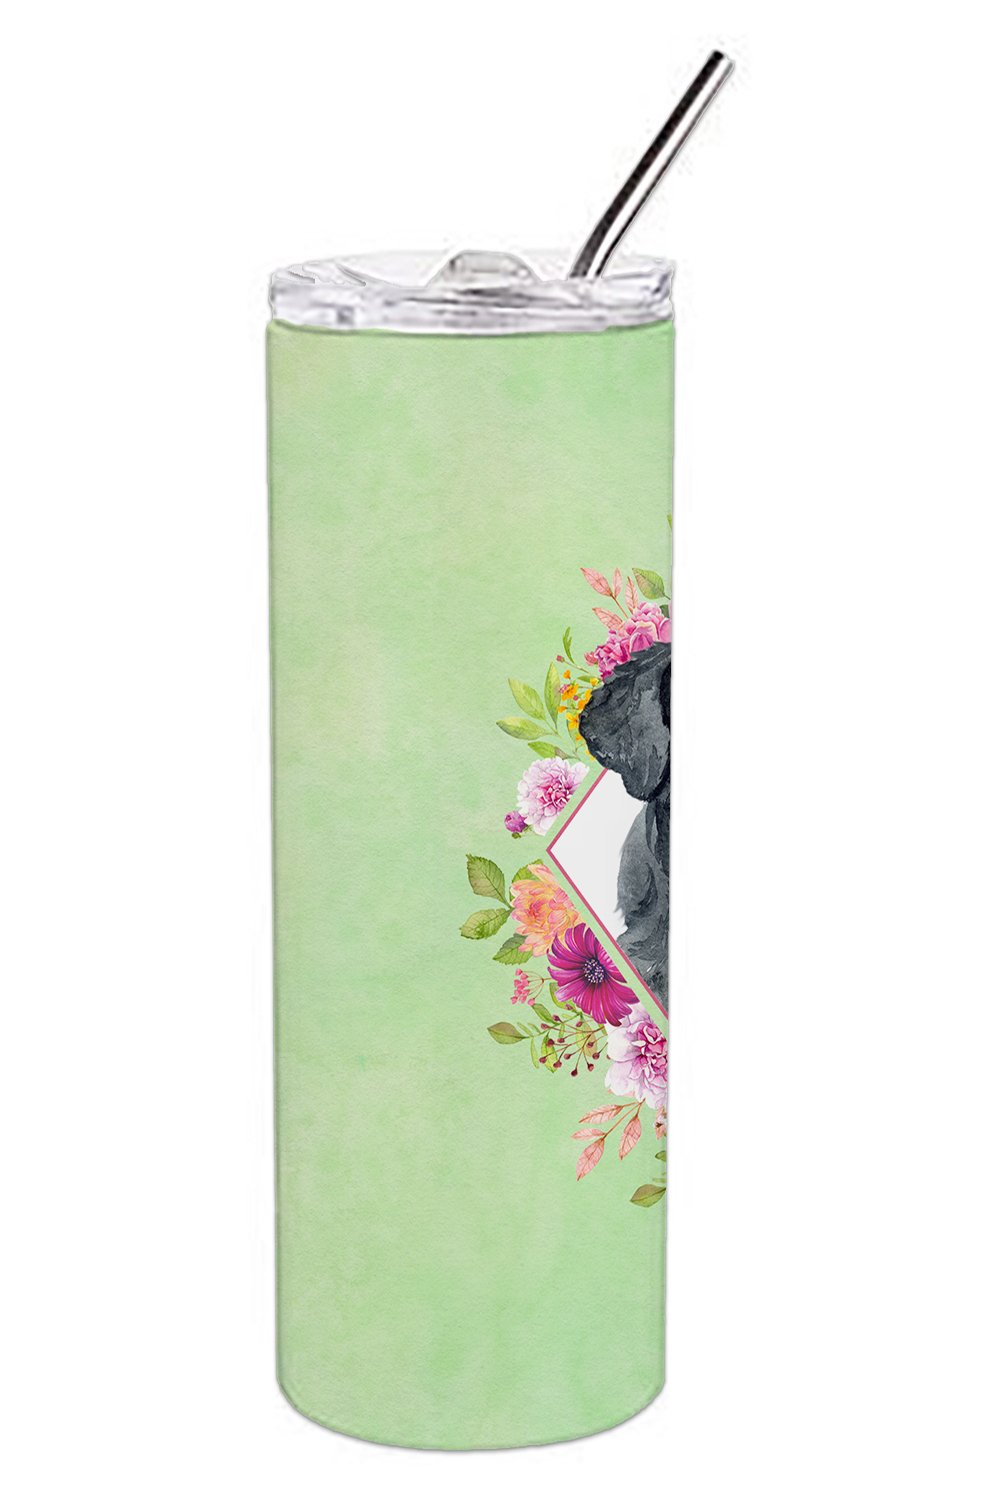 Giant Schnauzer Green Flowers Double Walled Stainless Steel 20 oz Skinny Tumbler CK4338TBL20 by Caroline's Treasures